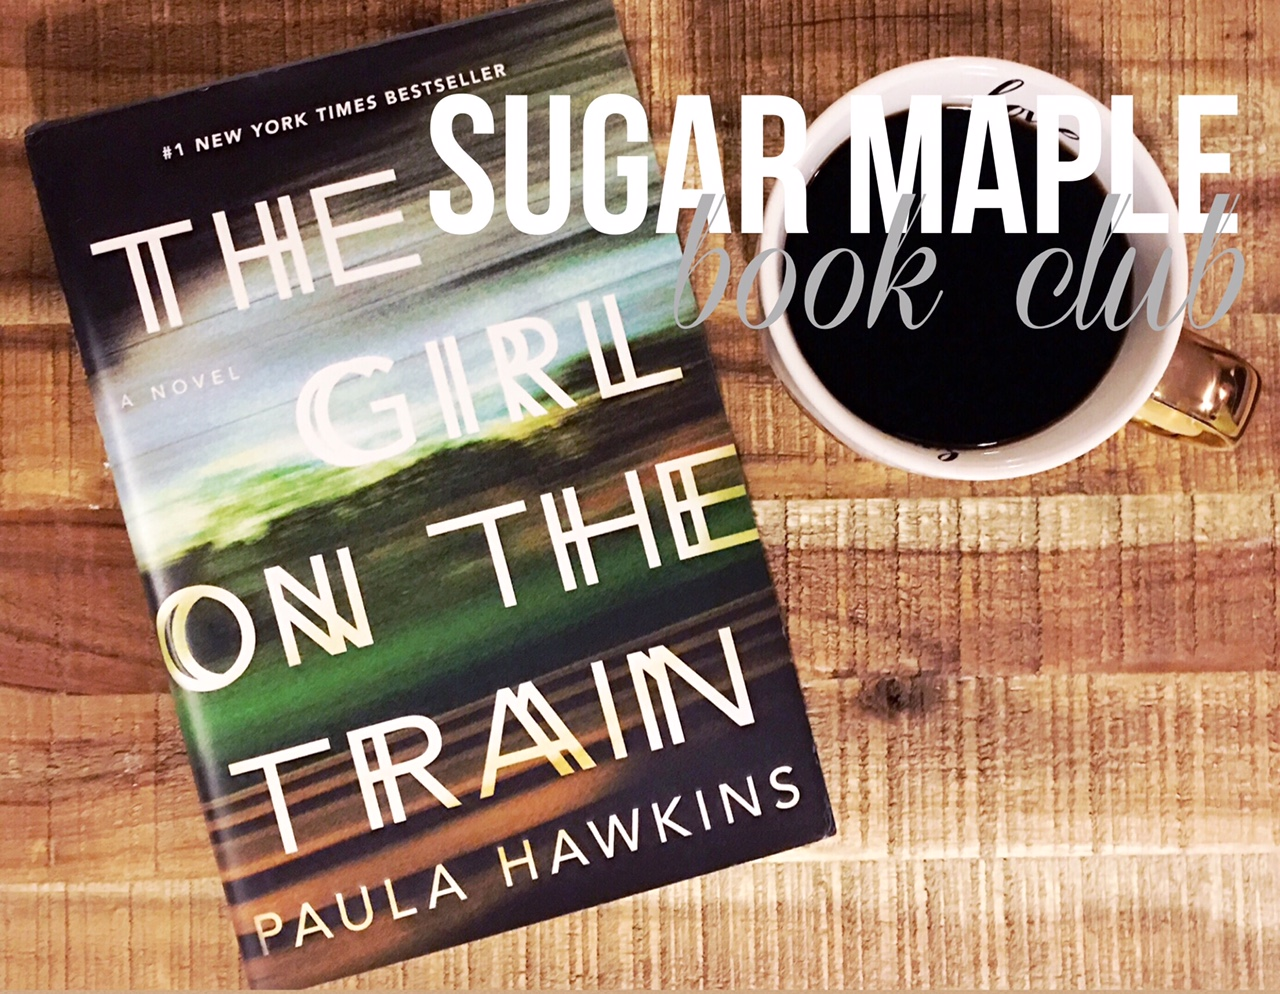 SUGAR MAPLE book club - The Girl On The Train by Paula Hawkins - A book club for busy moms who love to read